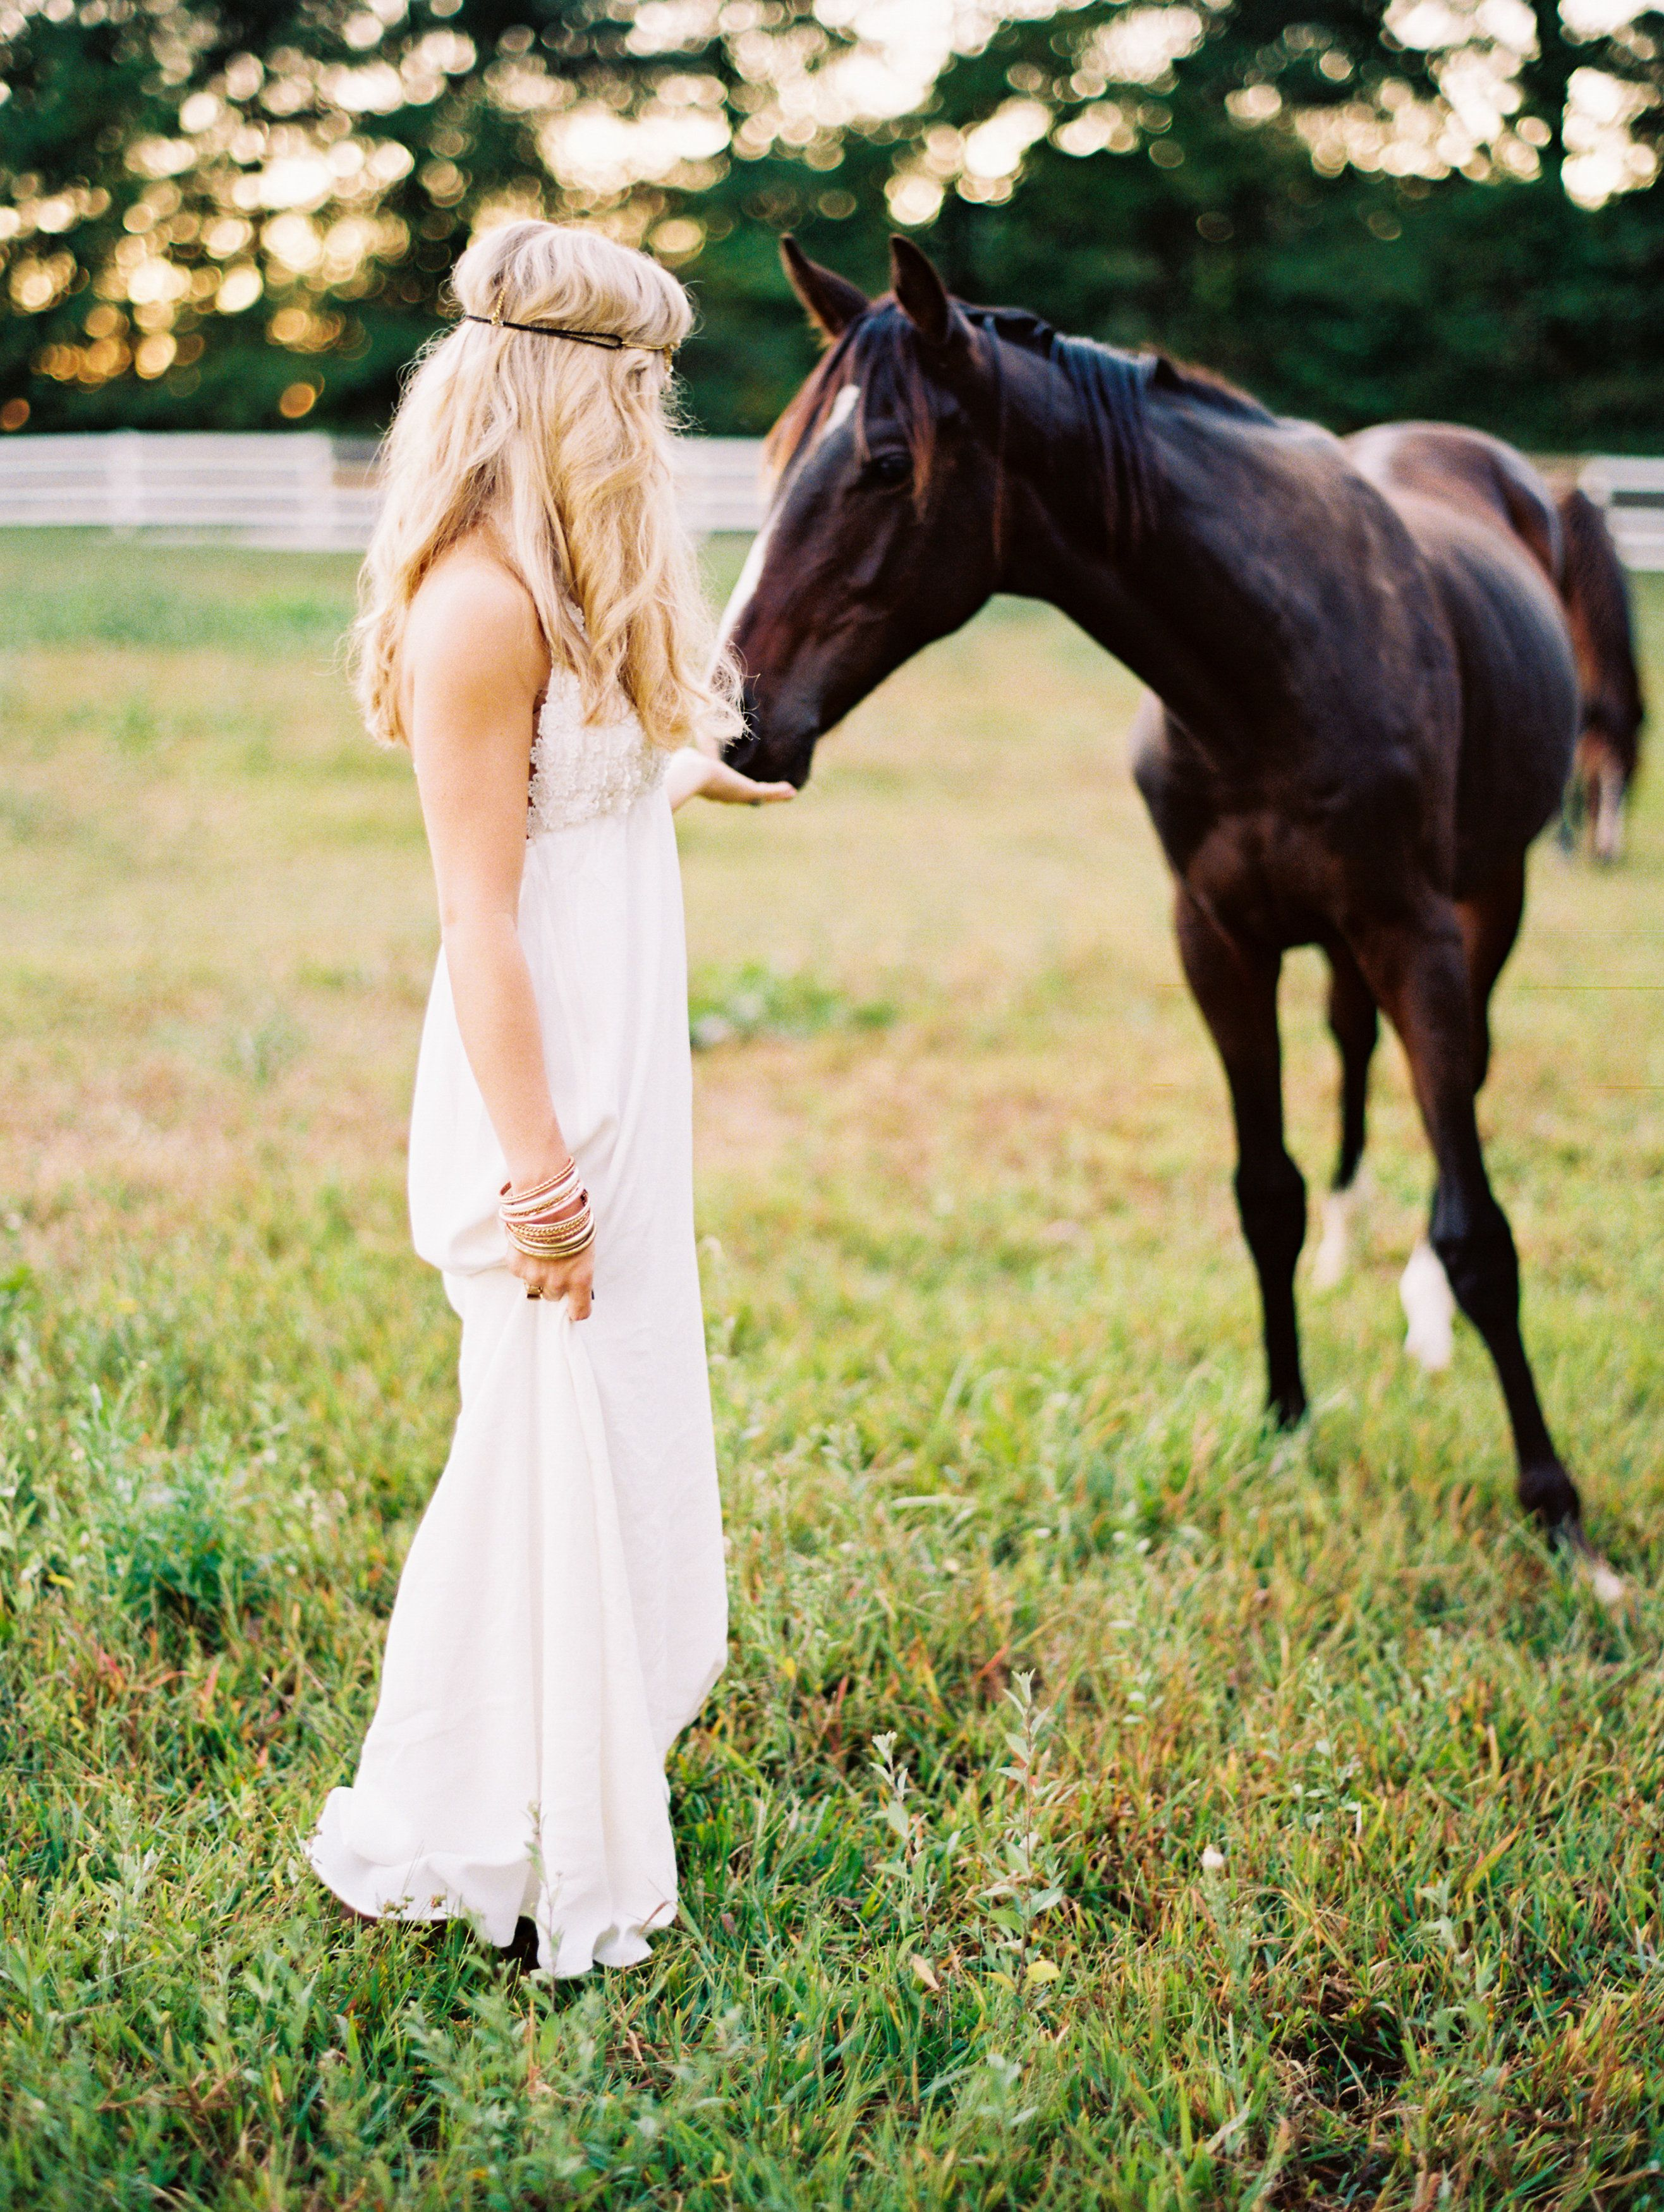 Bride with Horse Boho Chic Photo Shoot NC Wedding Planner